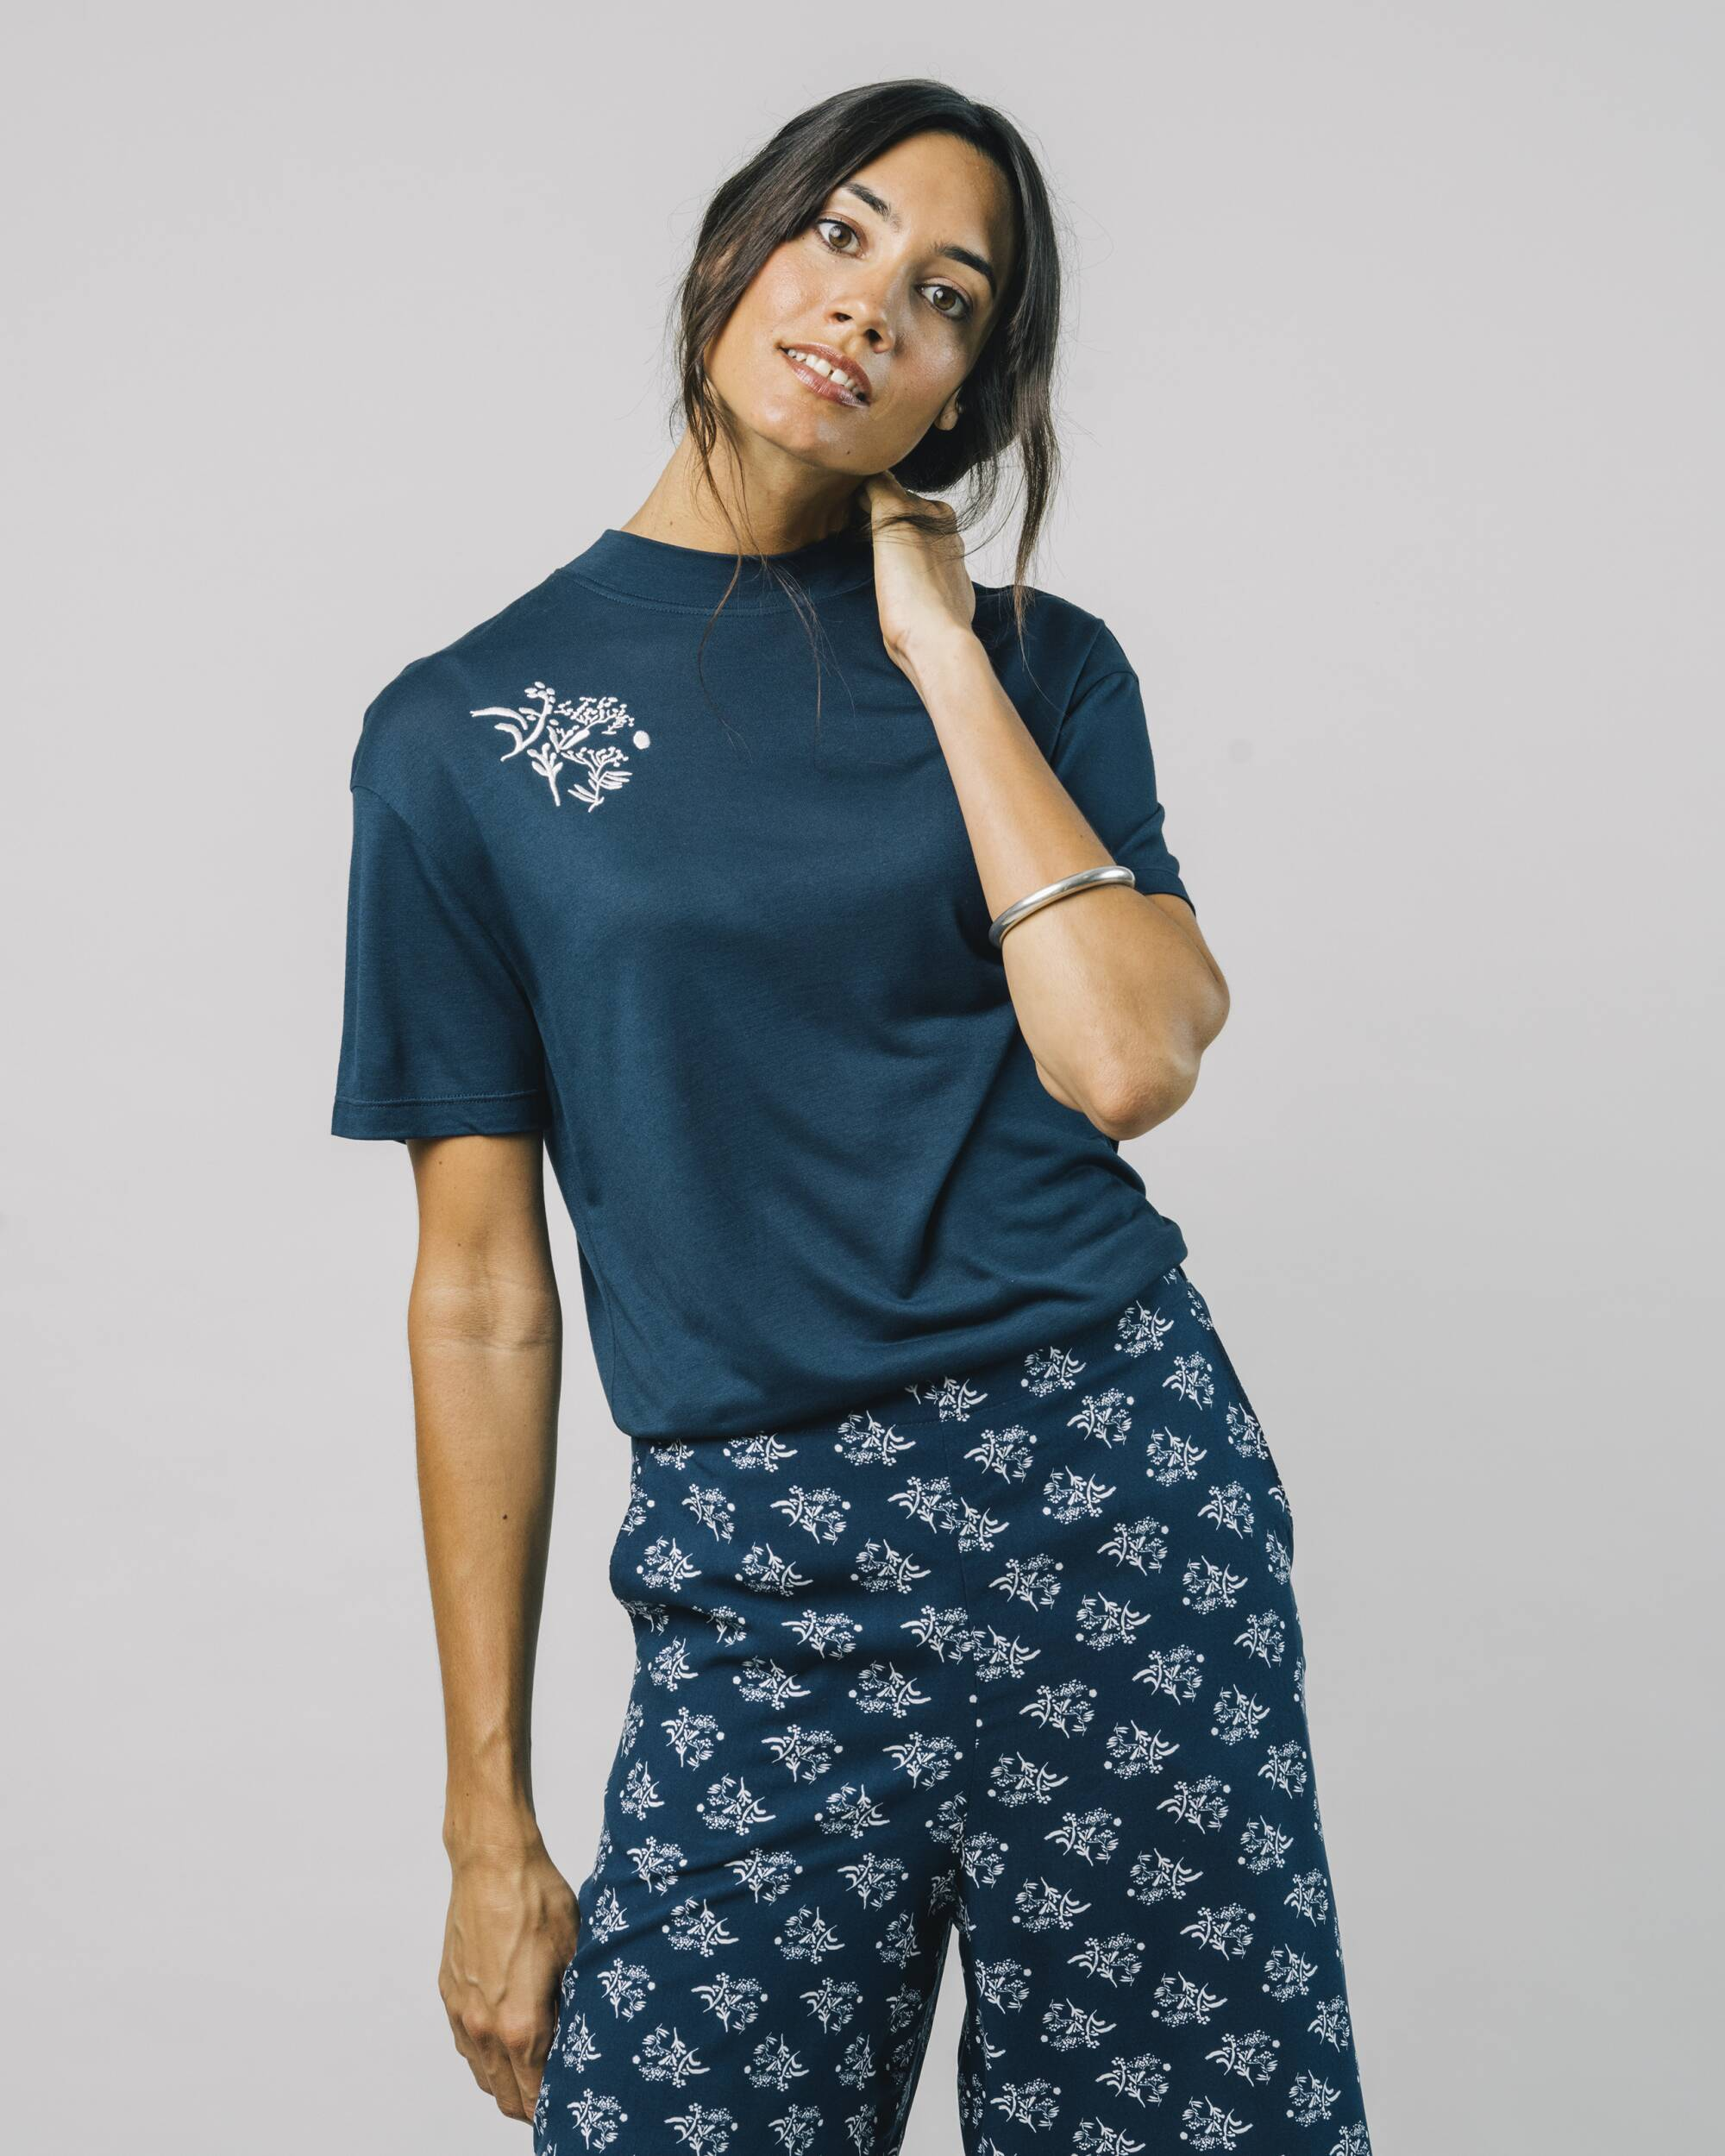 Discover our Blossom T-Shirt made of Ecovero Viscose. Fair & sustainable T-Shirts for Women by Brava Fabrics, ethically made in Portugal. ✓ Fair ✓ Sustainable